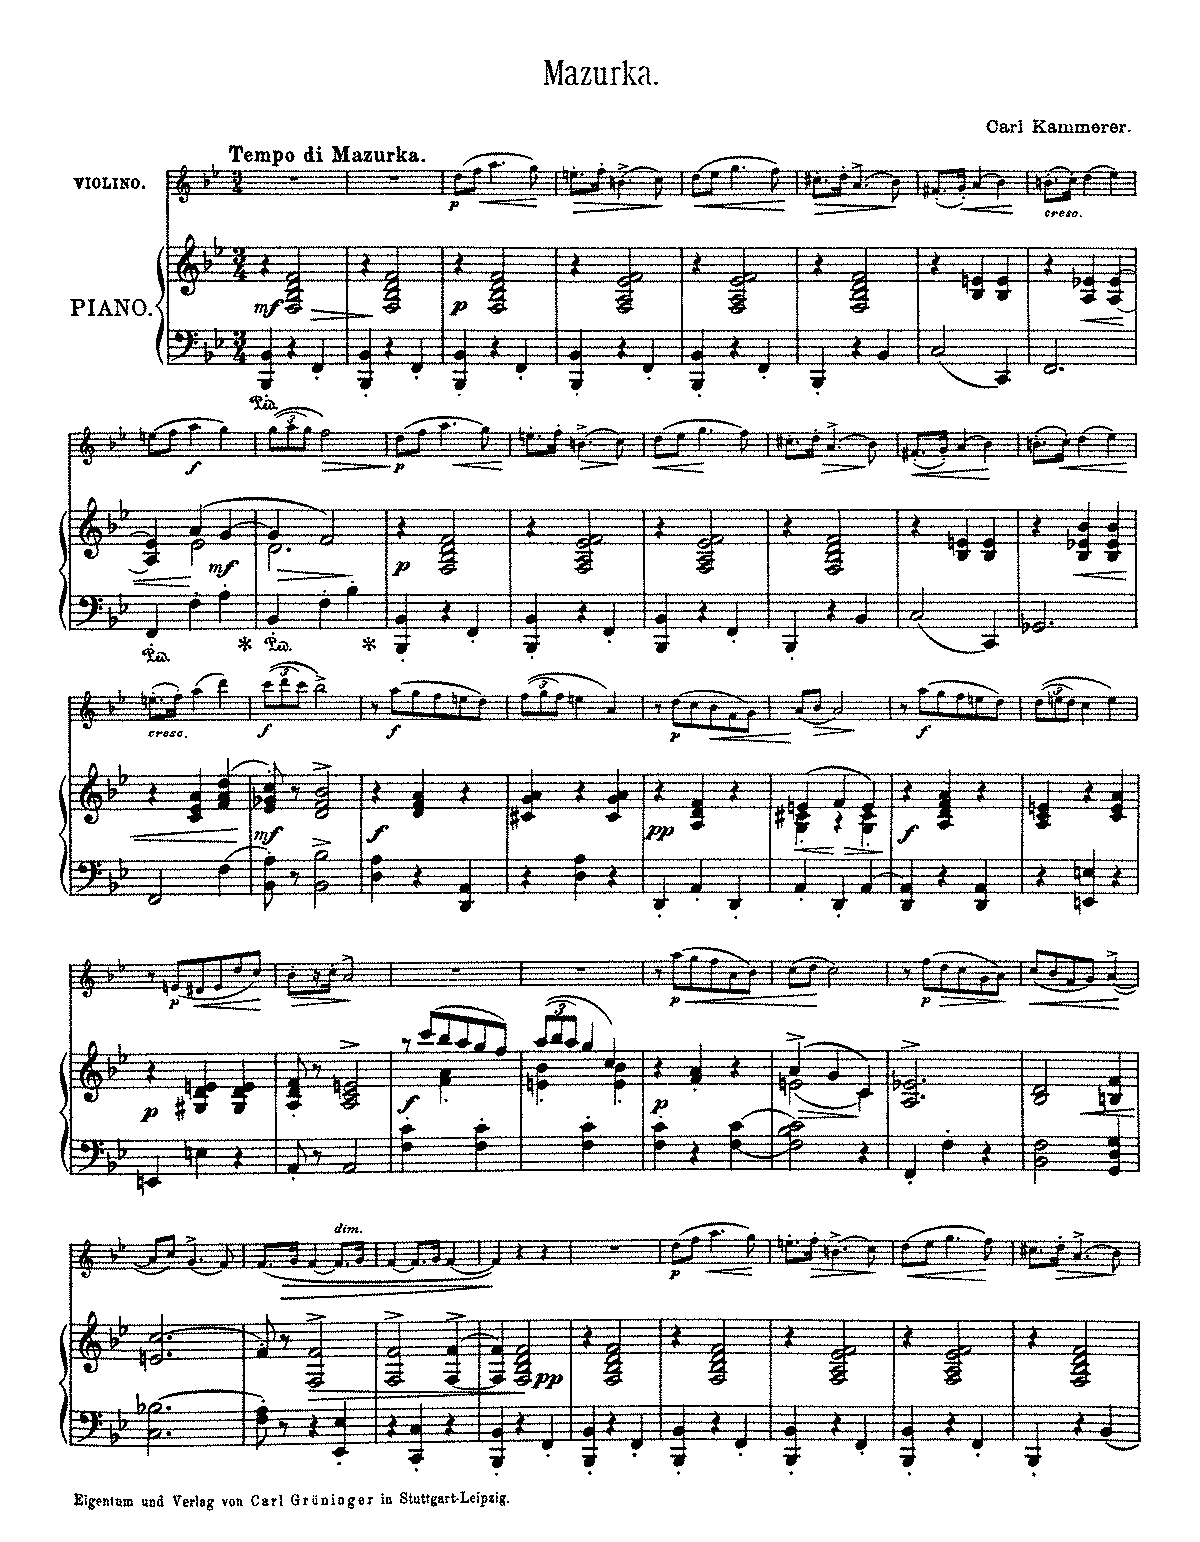 PMLP636605-CKammerer Mazurka for Violin and Piano NMZ 1897 6.pdf